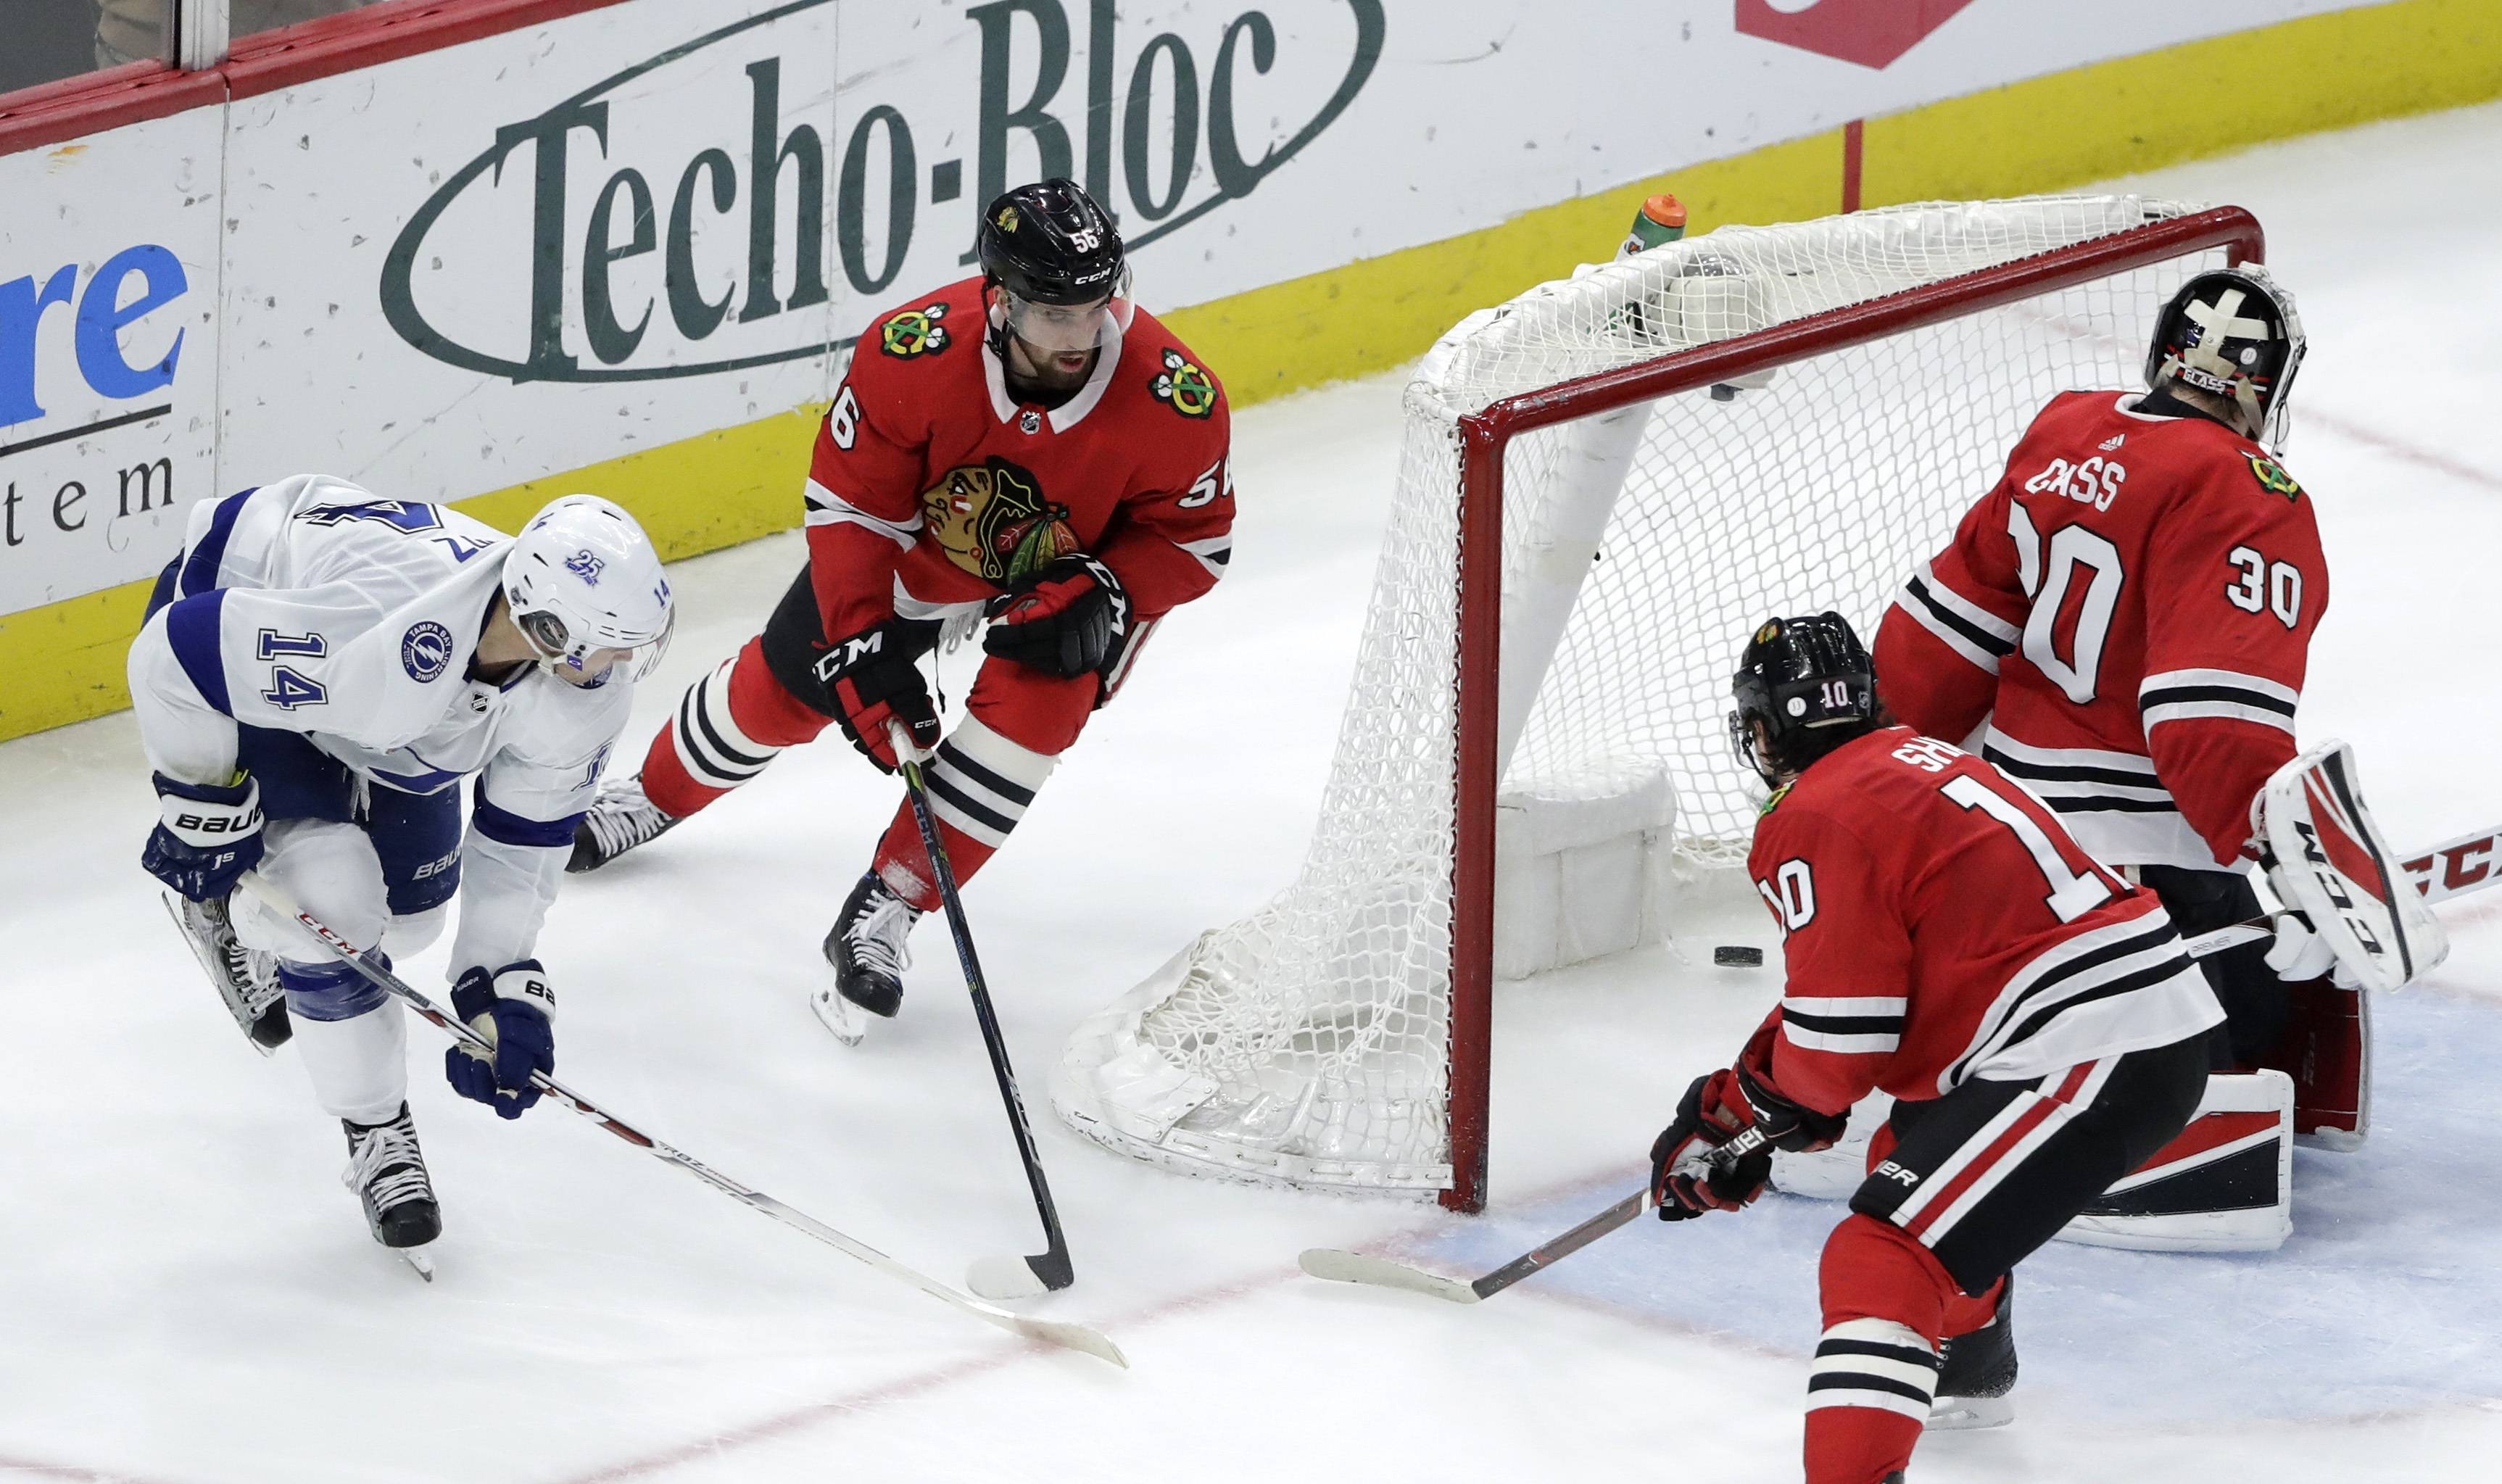 Tampa Bay Lightning's Chris Kunitz (14) scores past Chicago Blackhawks goaltender Jeff Glass as Erik Gustafsson (56) and Patrick Sharp also defend during the second period of an NHL hockey game Monday, Jan. 22, 2018, in Chicago.